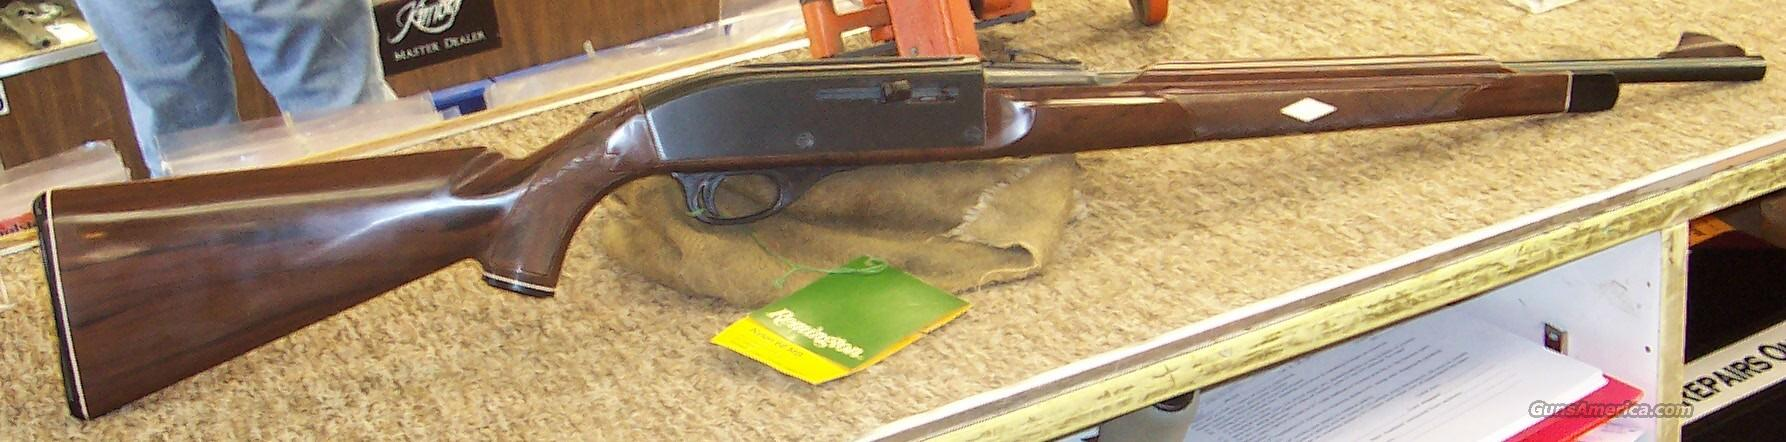 Remington Nylon 66  Guns > Rifles > Remington Rifles - Modern > .22 Rimfire Models